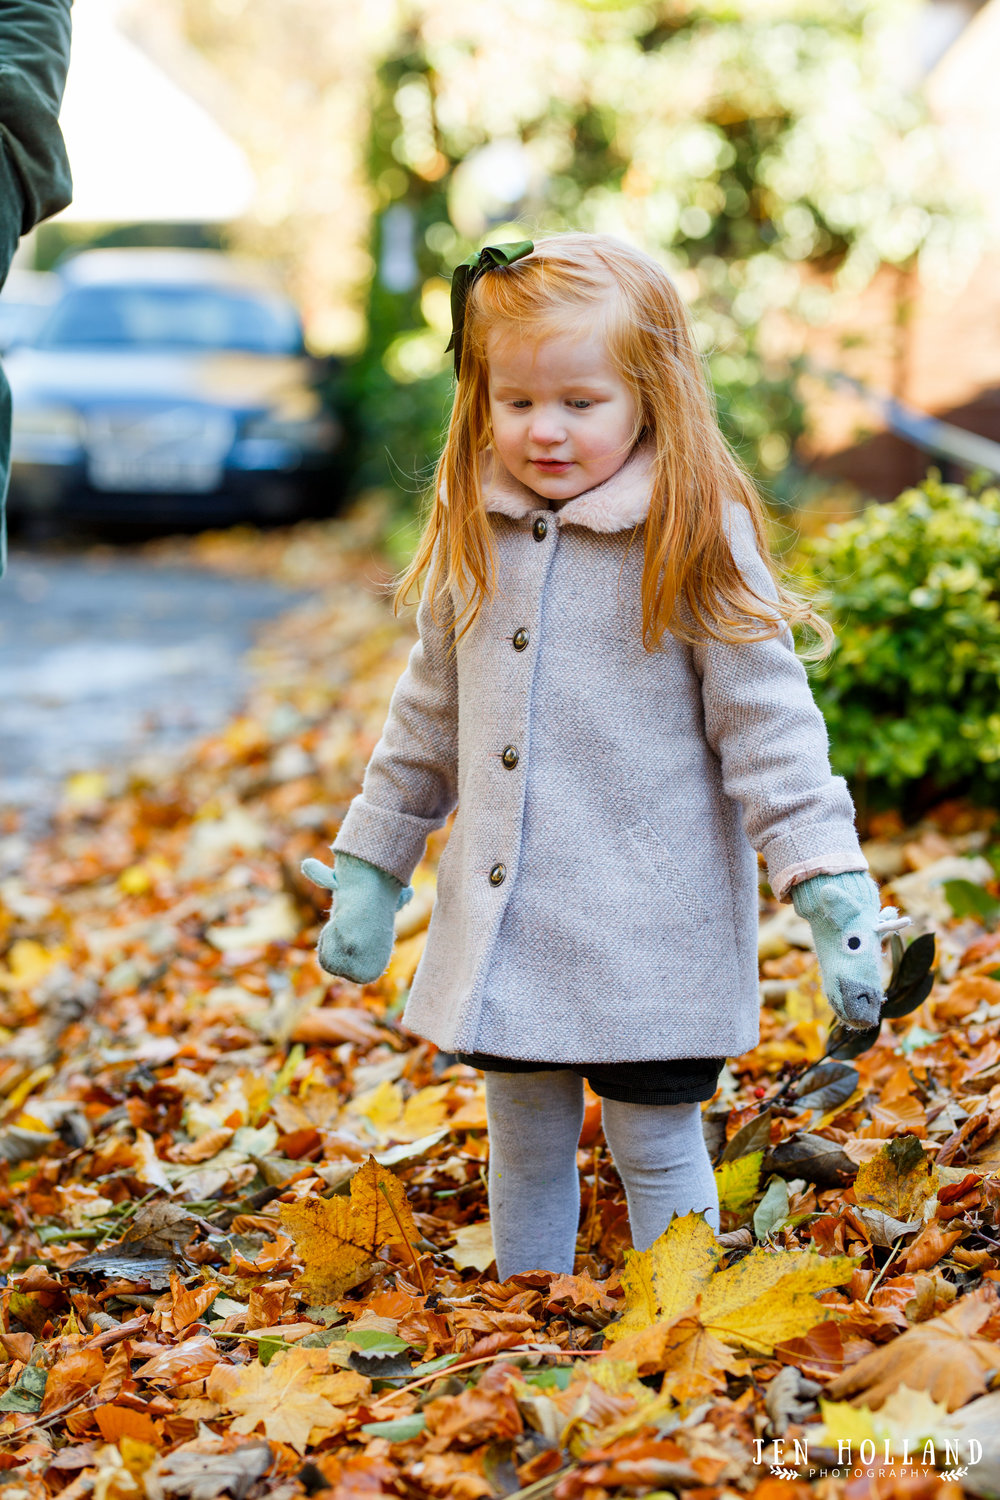 Red haired girl playing in the autumn leaves, Westbere, Kent